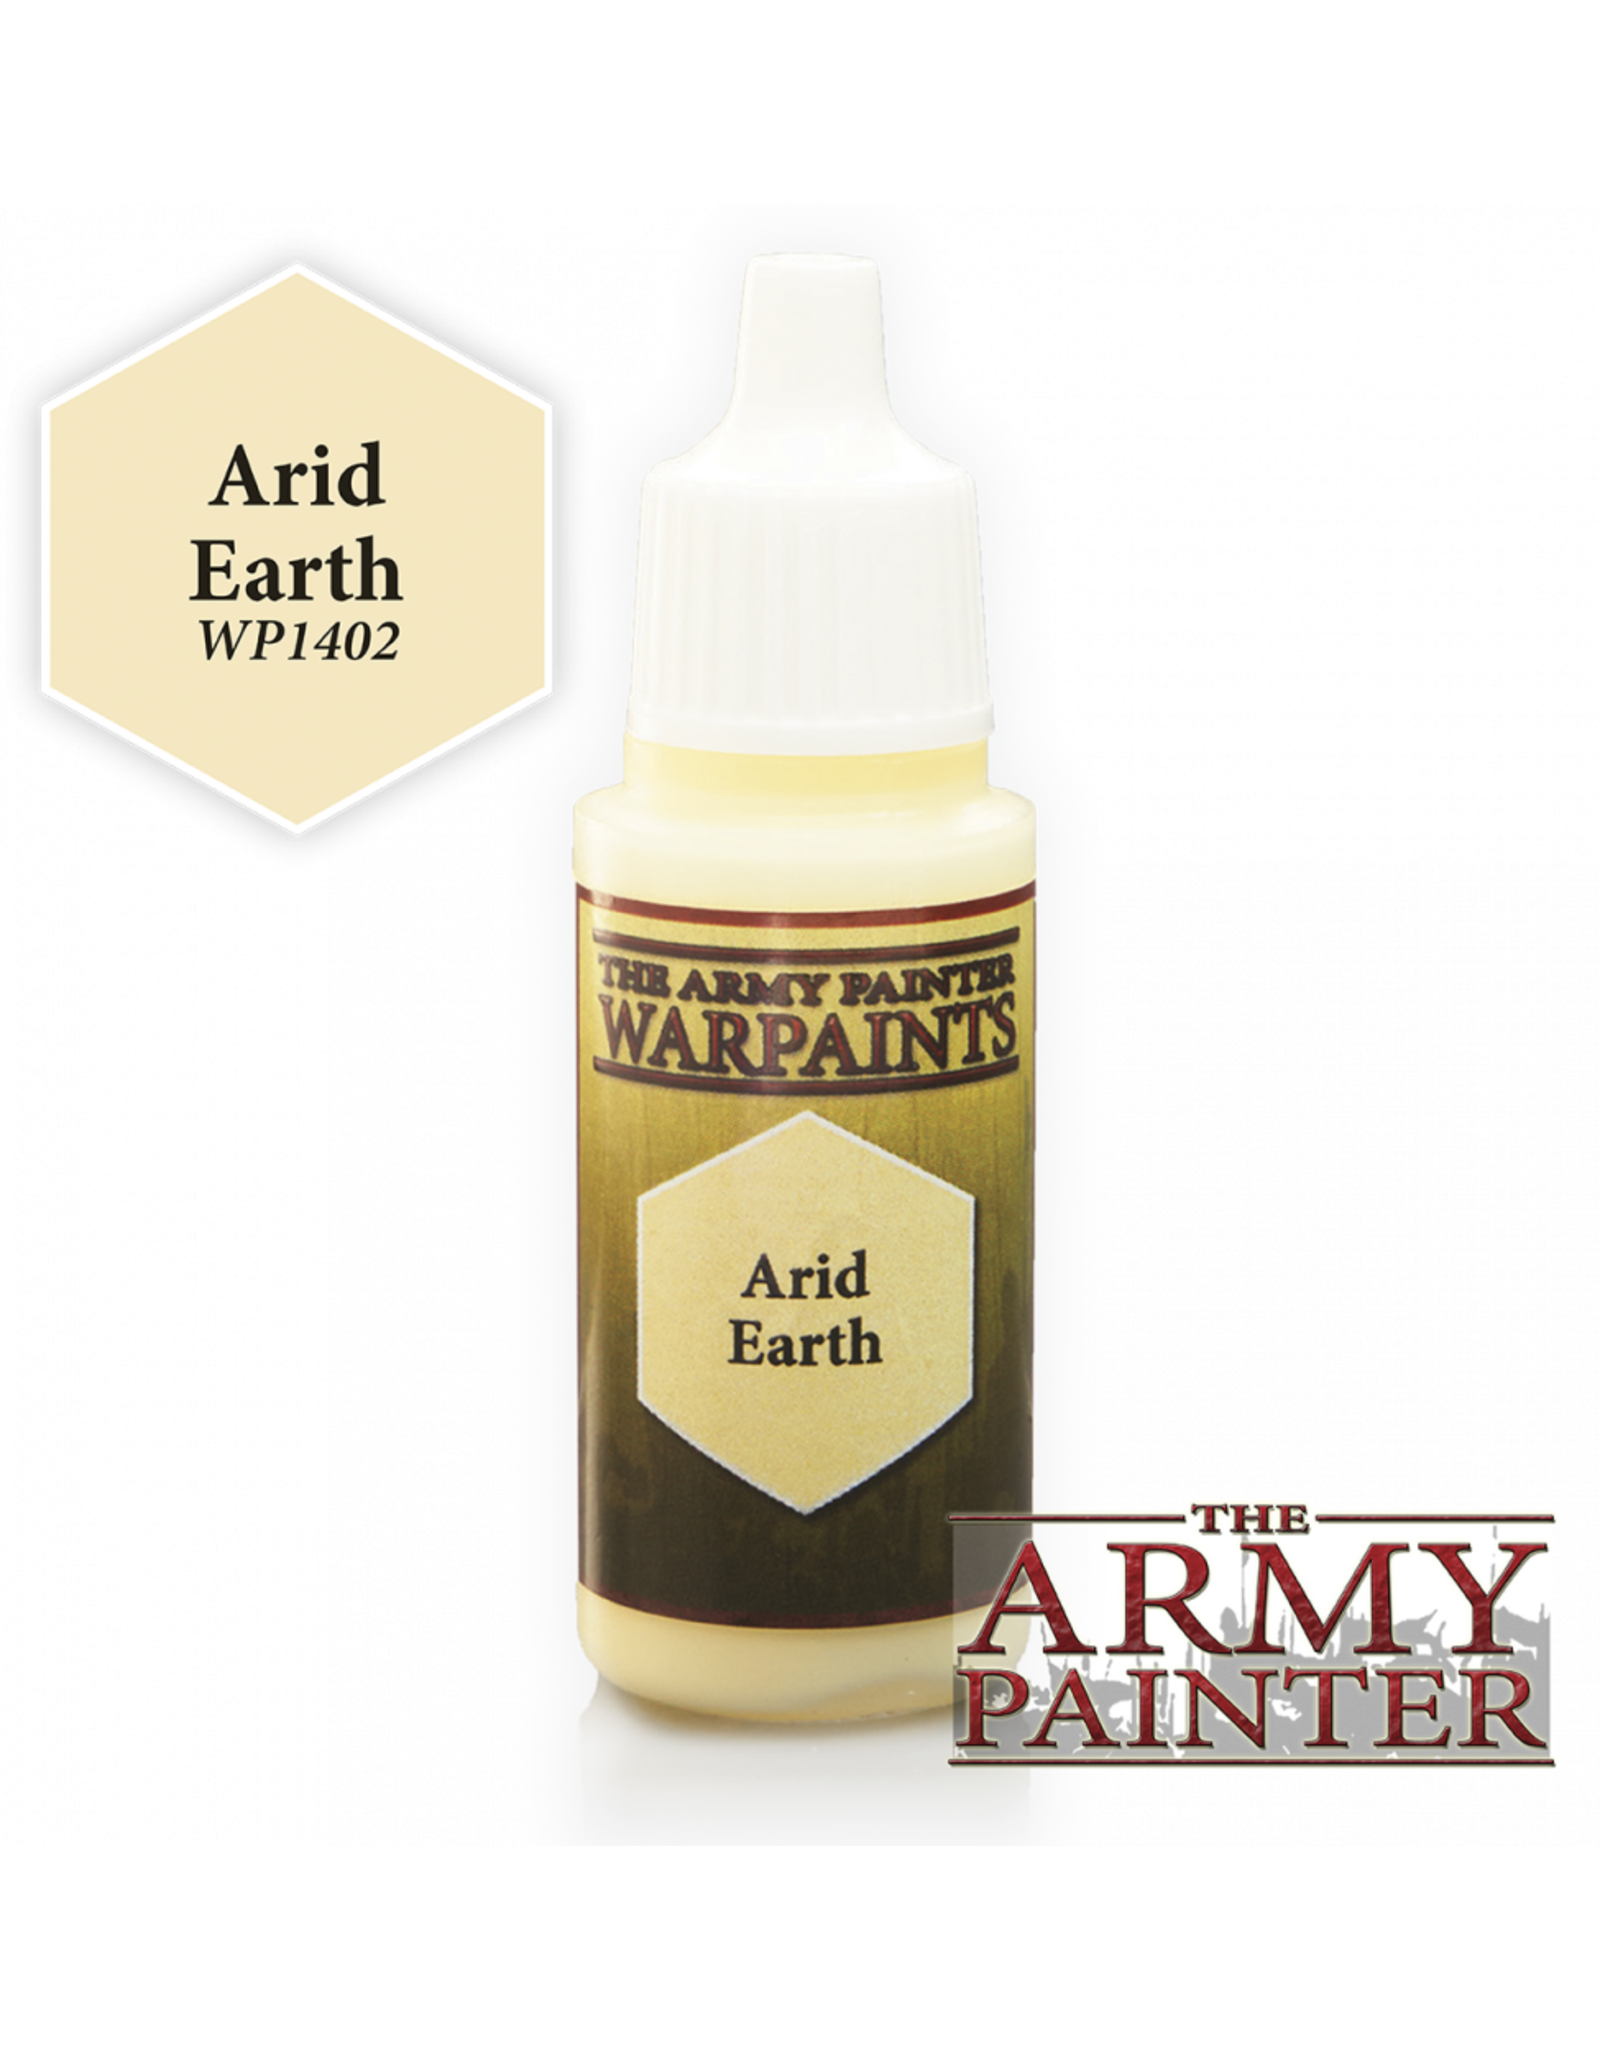 THE ARMY PAINTER ARMY PAINTER WARPAINTS ARID EARTH